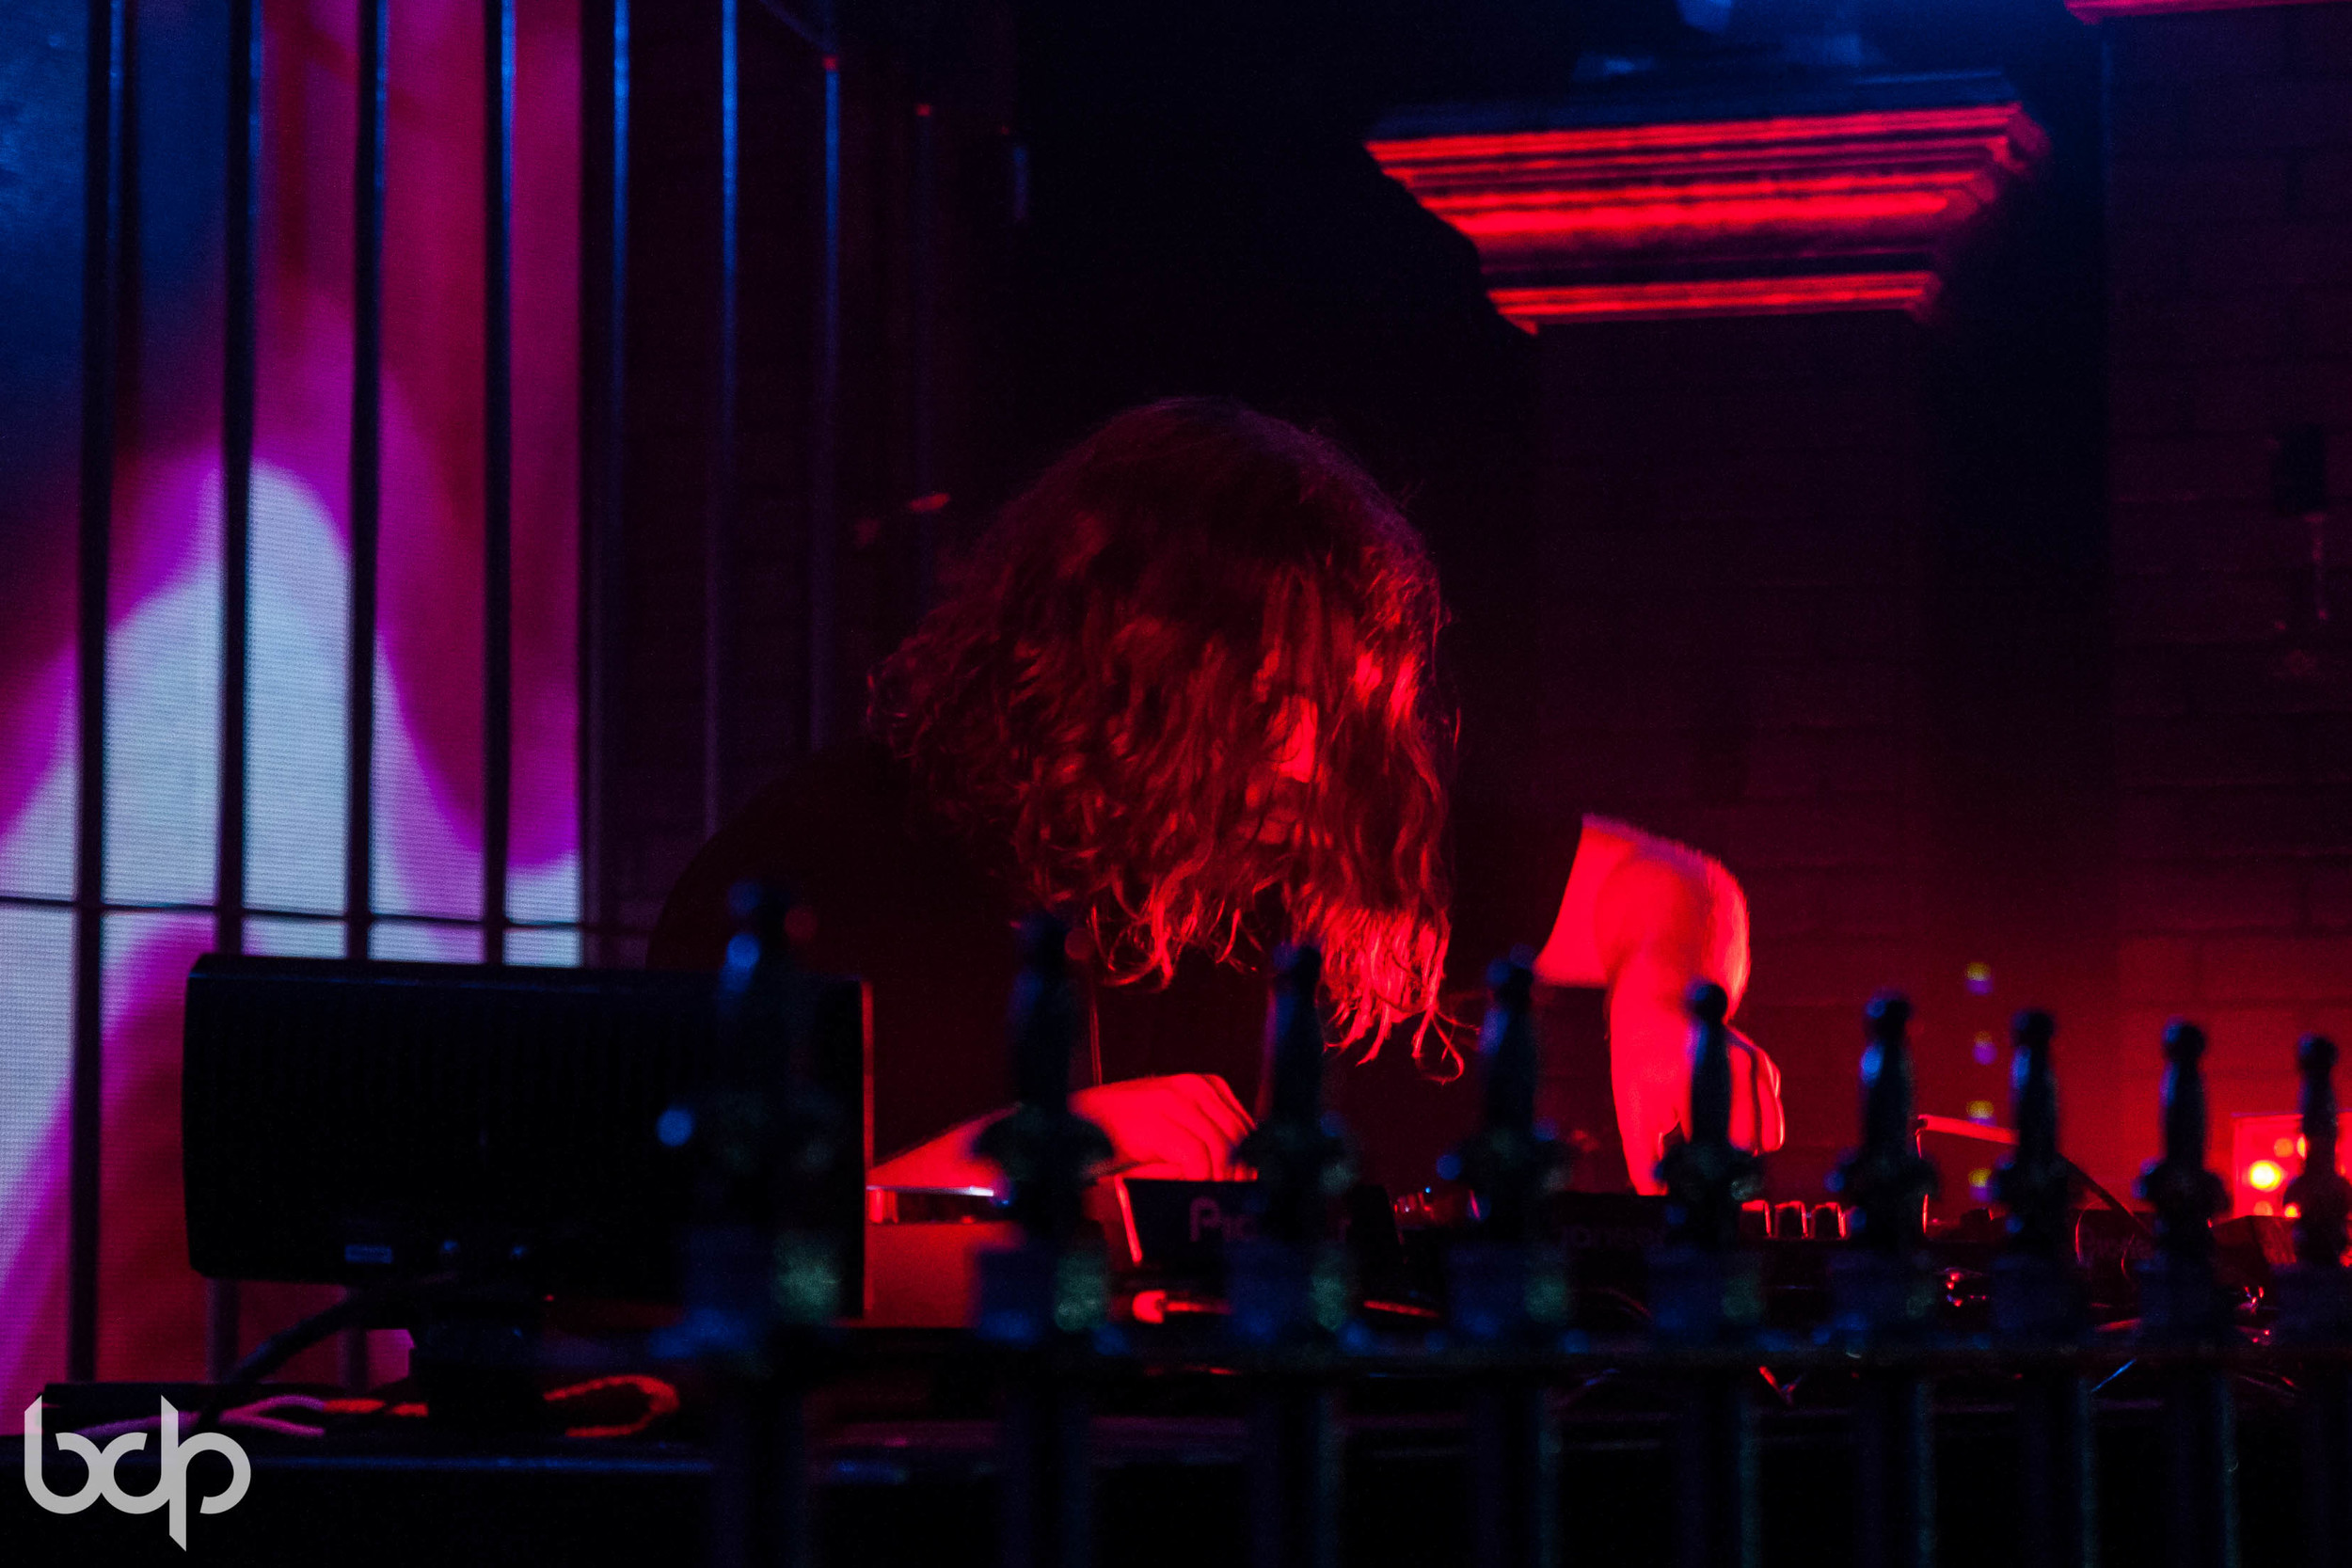 Tommy Trash & Wolfgang Gartner at Epic 100813 BDP-45.jpg